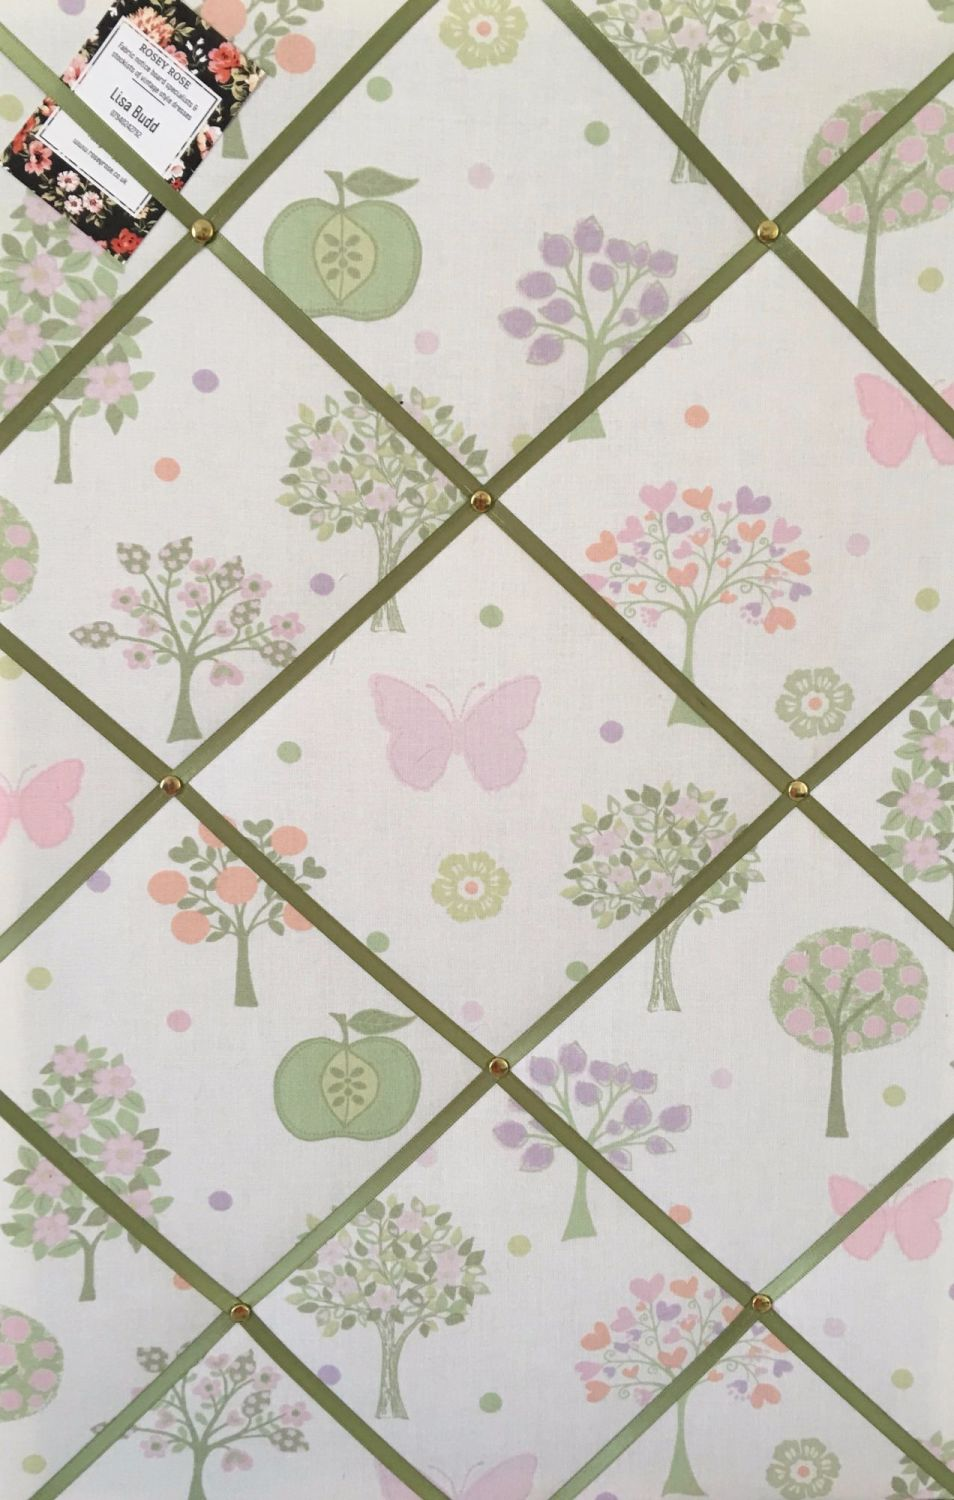 Large 60x40cm Laura Ashley Verrtical Esme Apple Butterfly Hand Crafted Fabr